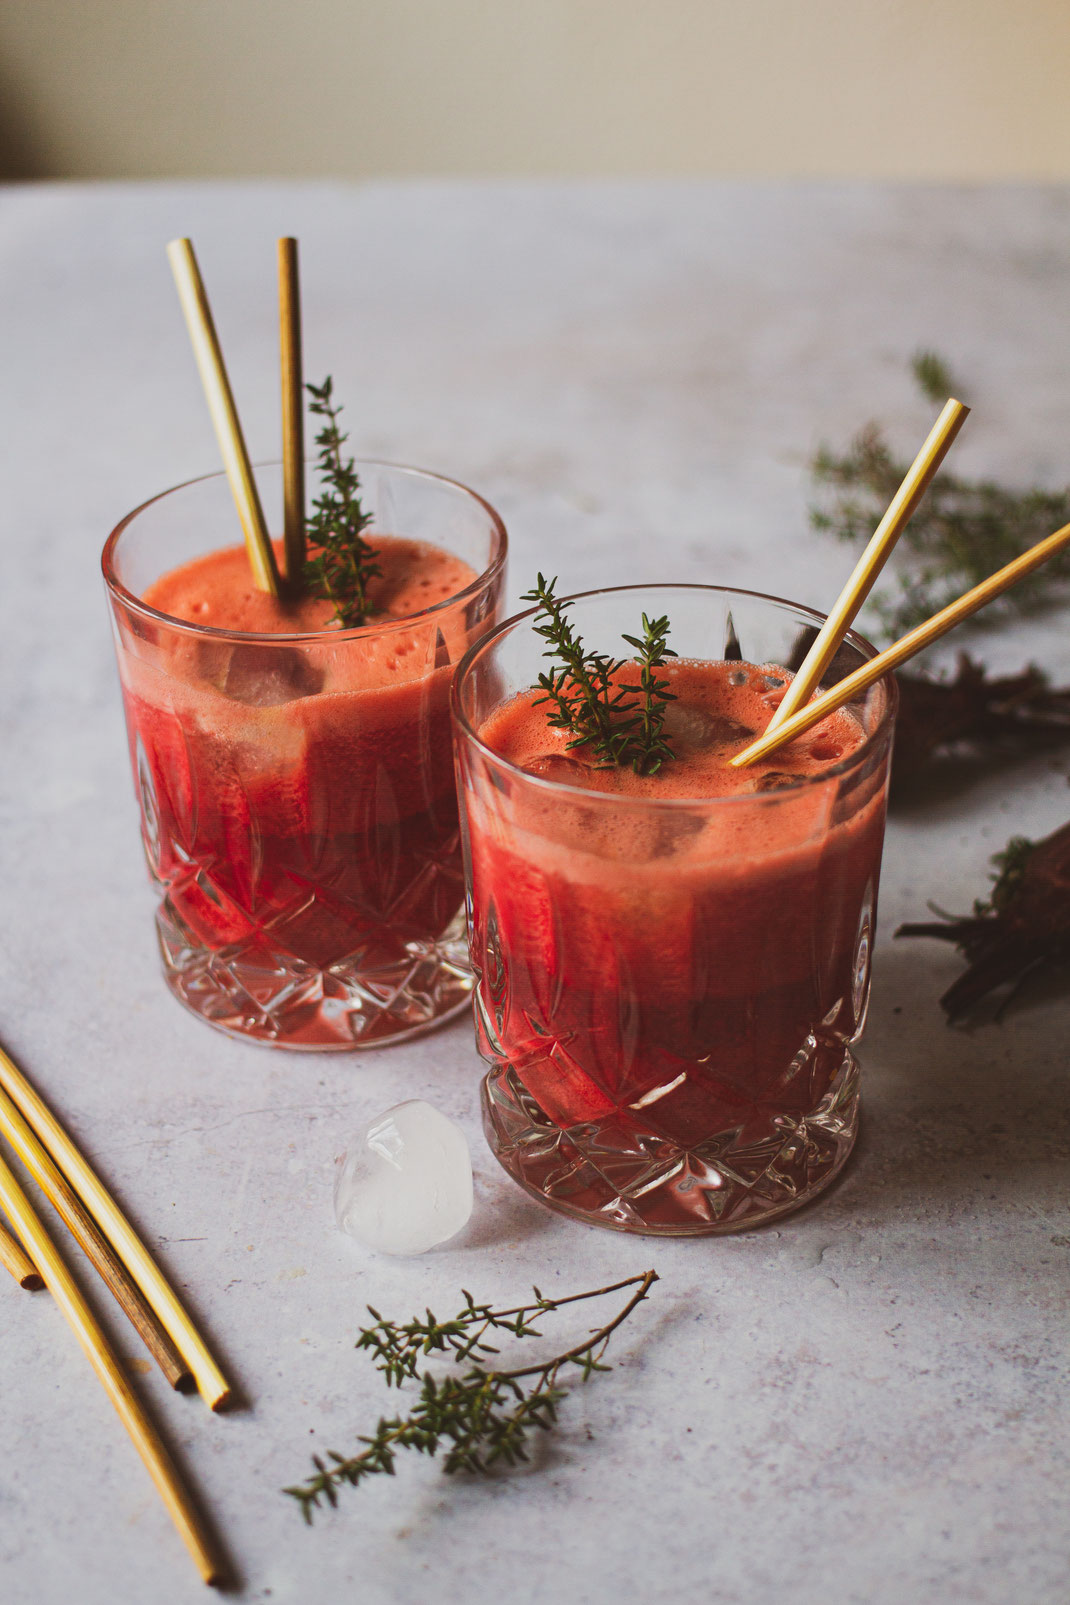 Botanical Drinks - Rote Beete Cocktail